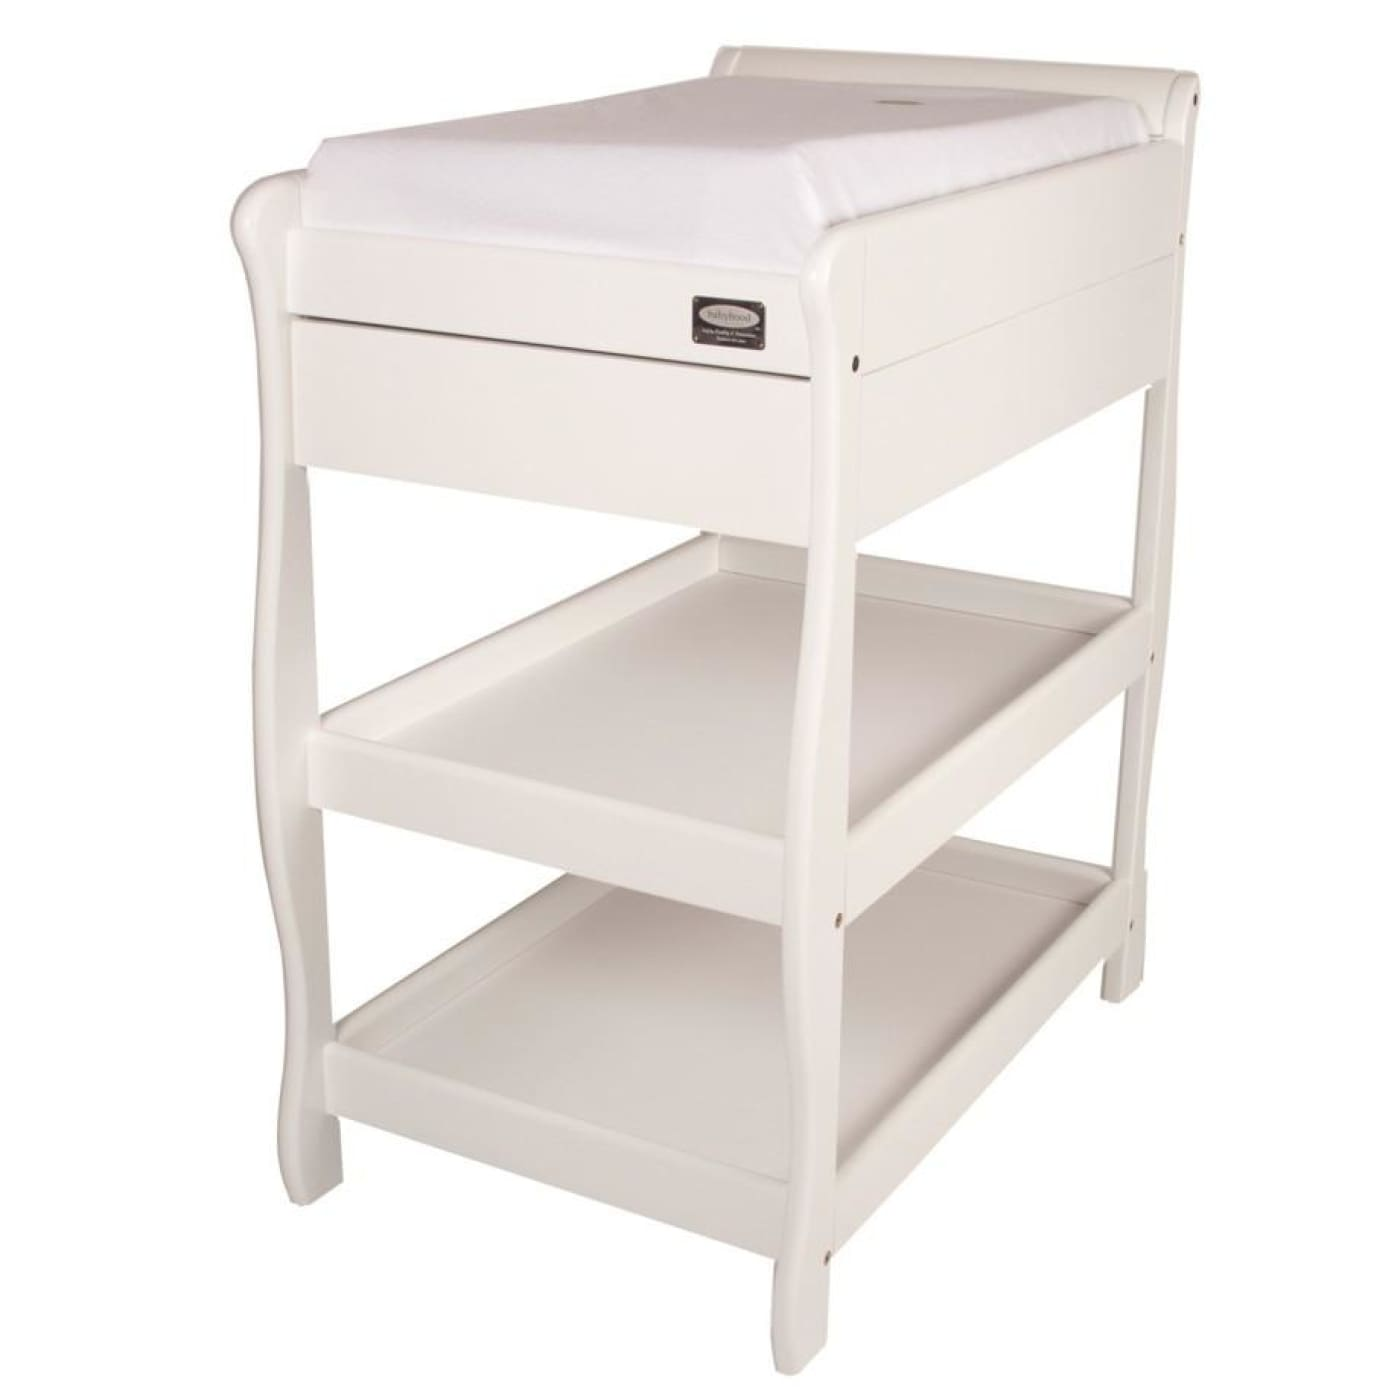 Babyhood Sleigh Change Table With Drawer - White - NURSERY & BEDTIME - CHANGE TABLES